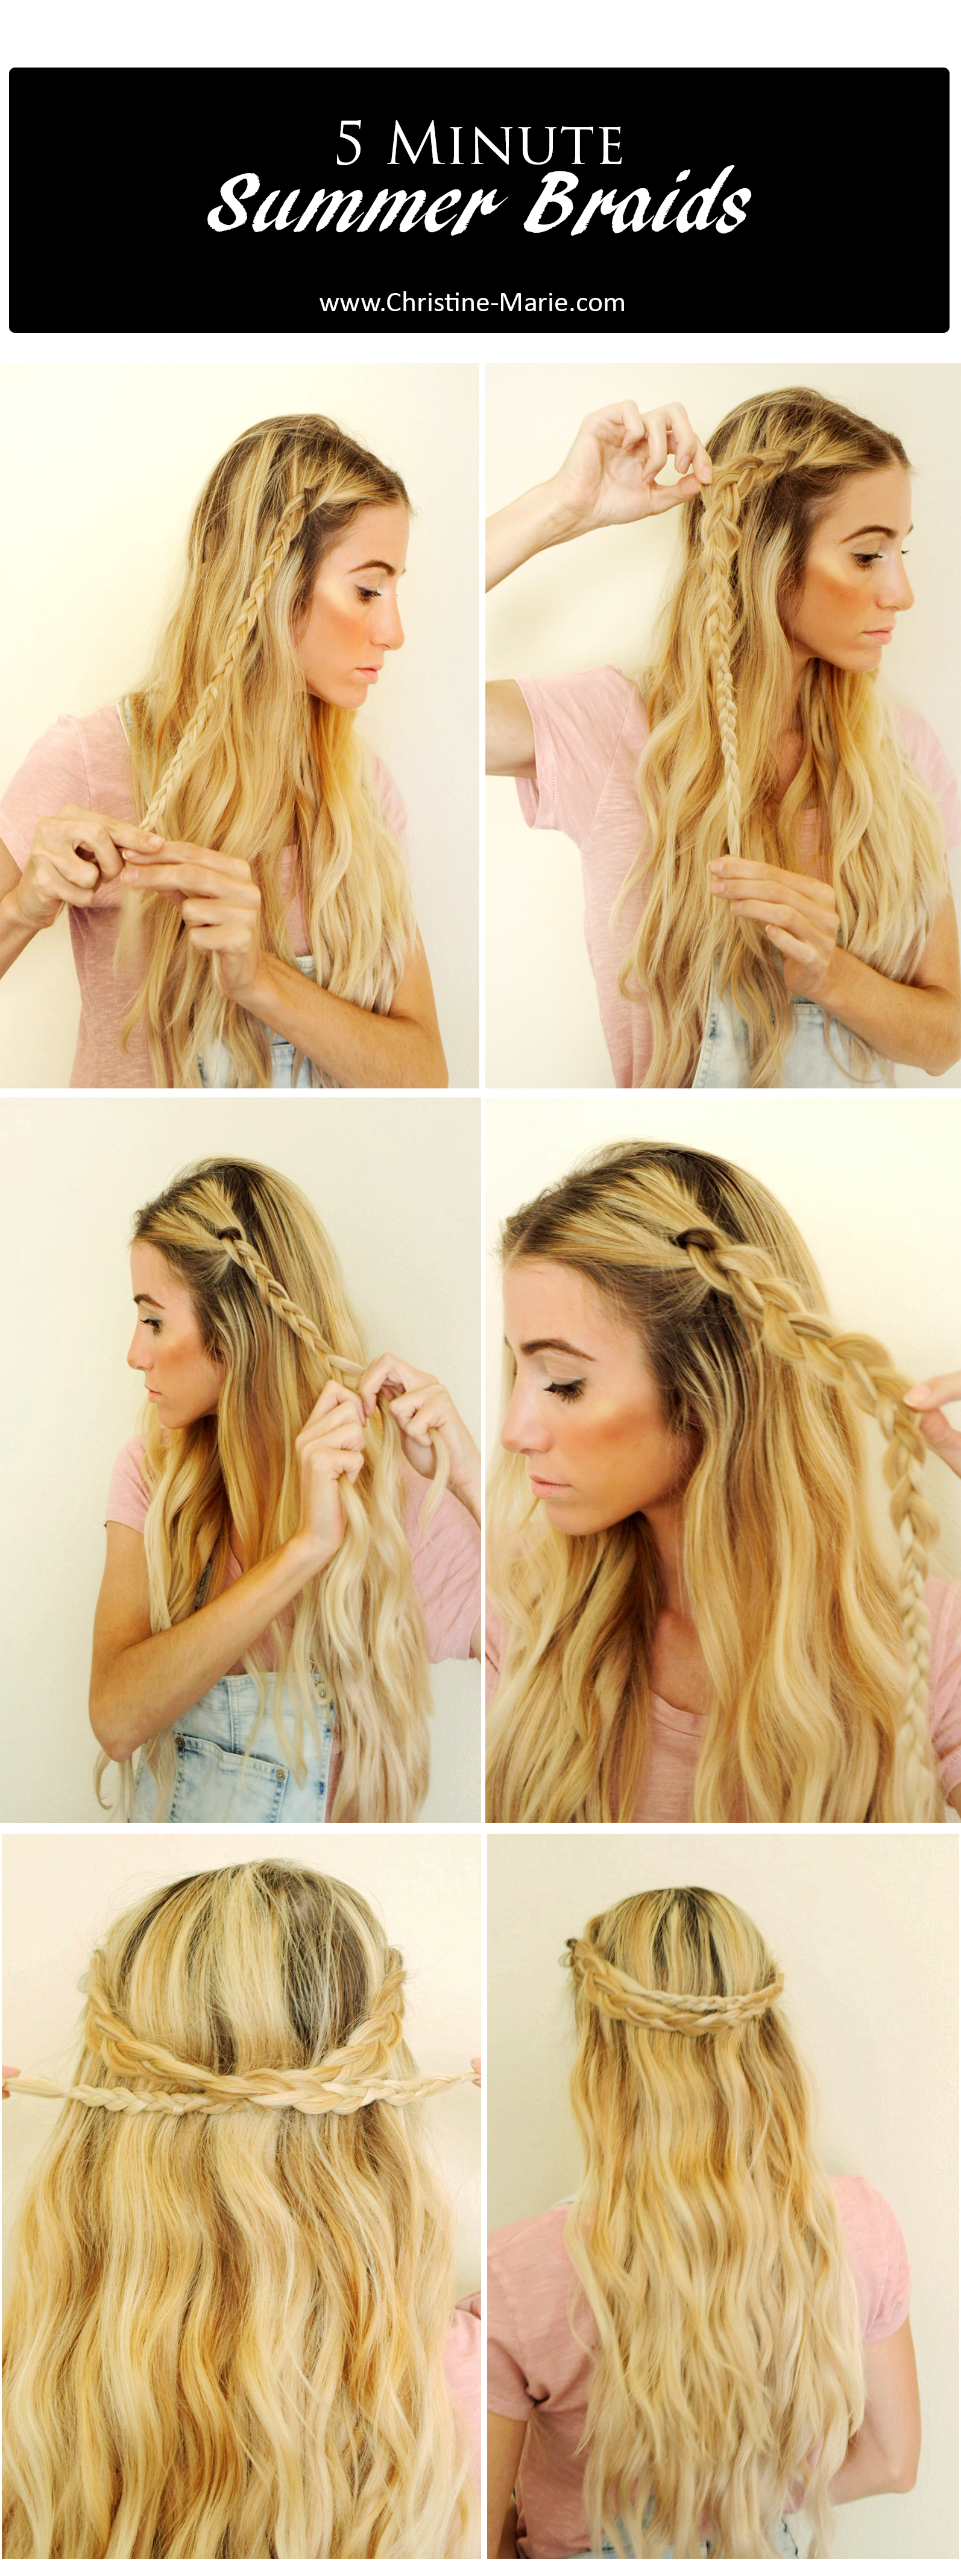 How to Create Easy 5 Minute Summer Braids